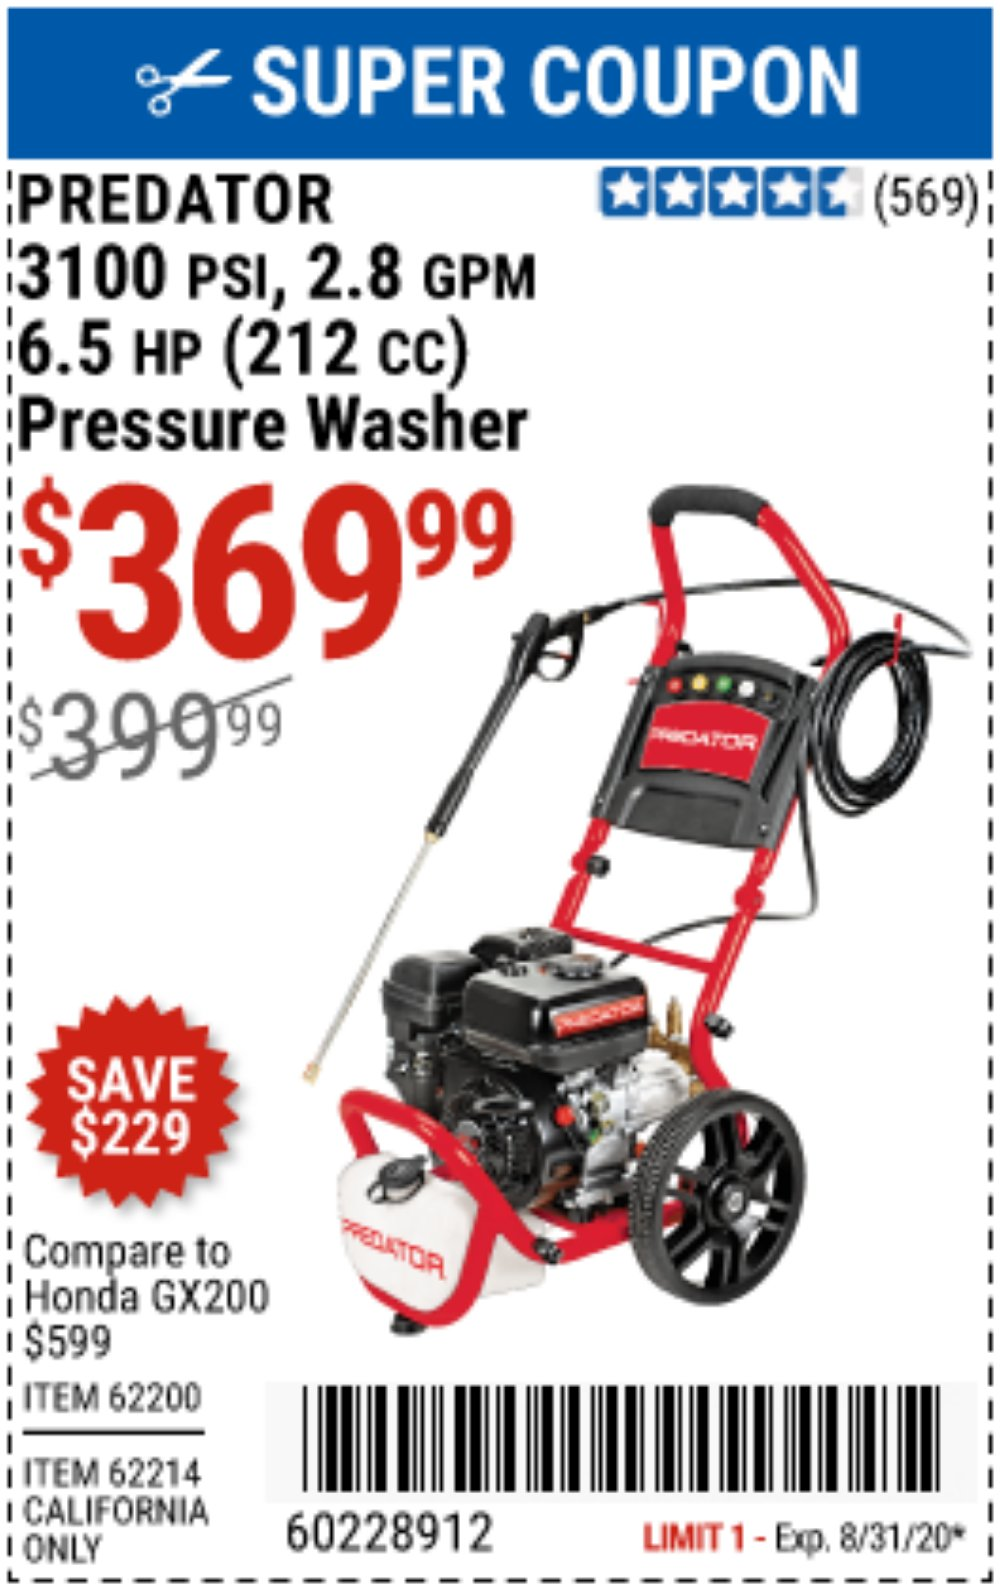 Harbor Freight Coupon, HF Coupons - 3100 Psi, 2.8 Gpm 6.5 Hp (212 Cc) Gas Powered Pressure Washers With 25 Ft. Hose